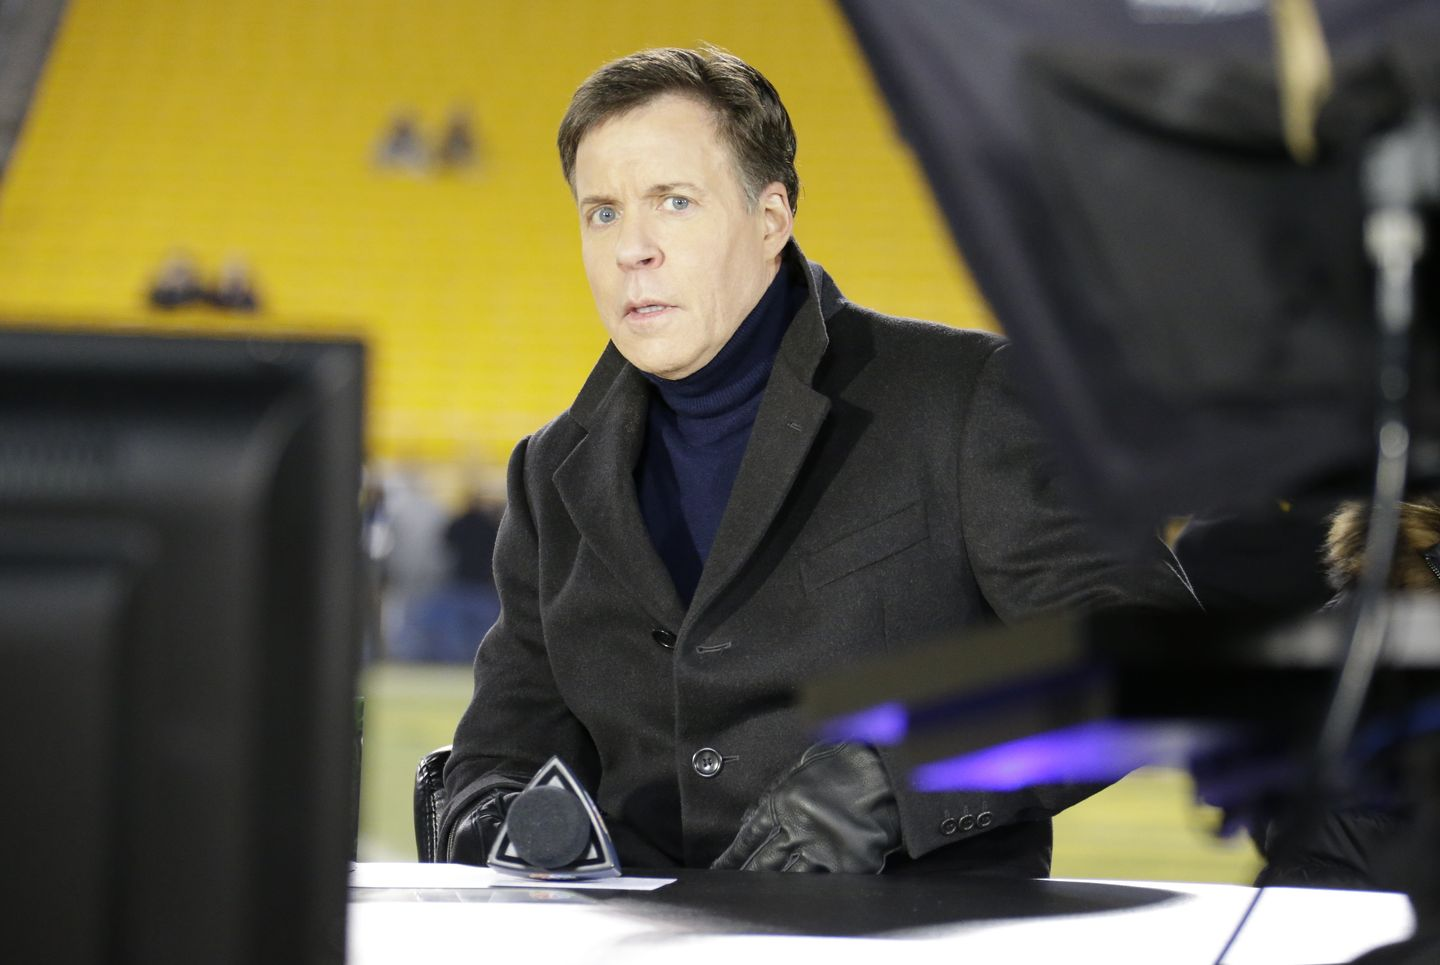 Bob Costas rips 'delusional' Republicans: 'If you support Trump, you're living in another reality'